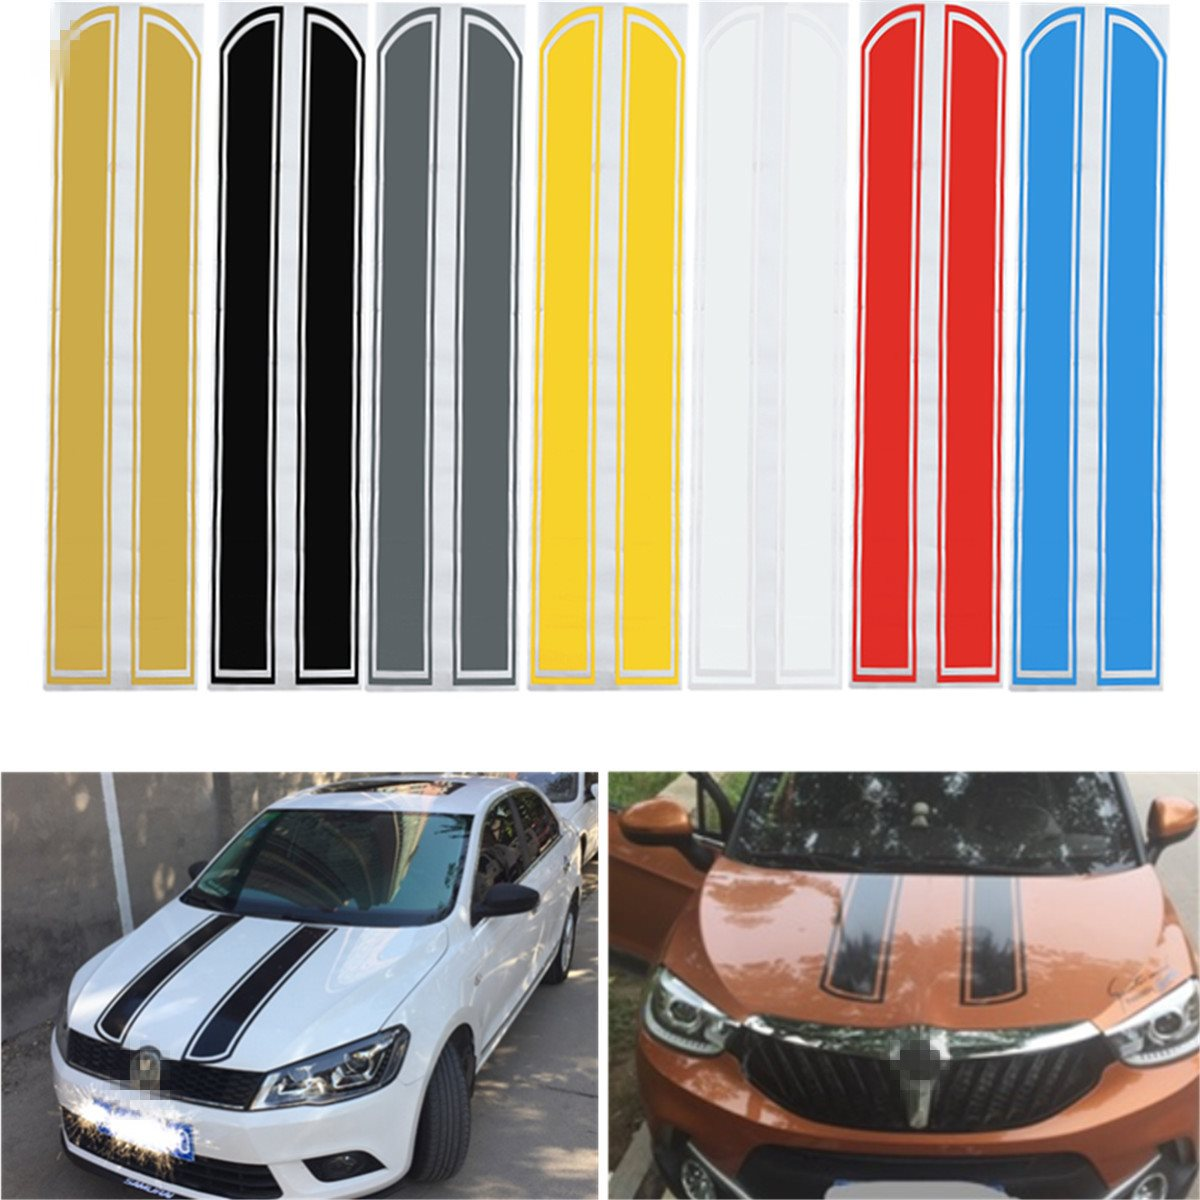 Universal 130cm x 24cm Car Hood Scratched Stickers Engine Cover Styling Reflective Decal Stripe Vinyl DIY Decoration PVC junction produce jp luxury reflective windshield sticker ho car auto motorcycle vinyl diy decal exterior window body car styling